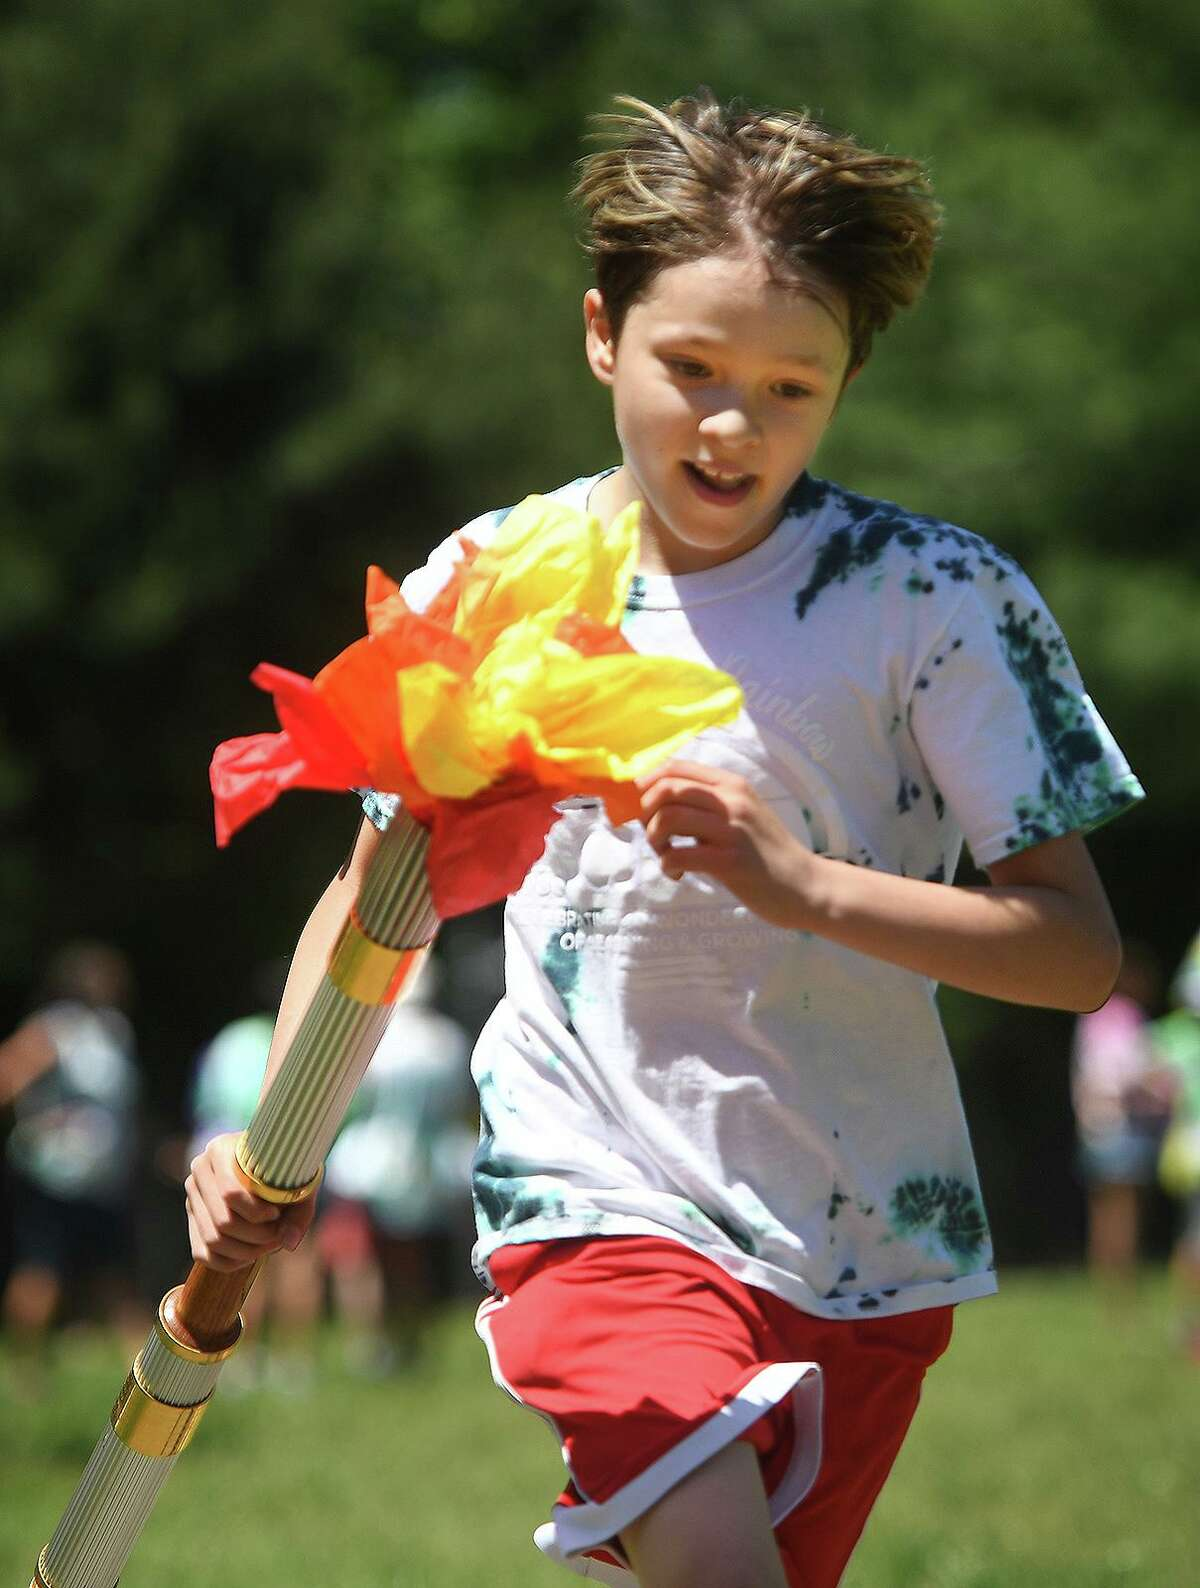 Fourth grader Tarek Bennani, 9, shows his running form as he carries the torch in the Olympic Torch Run at Columbus Magnet School in Norwalk, Conn. on Thursday, May 27, 2021.